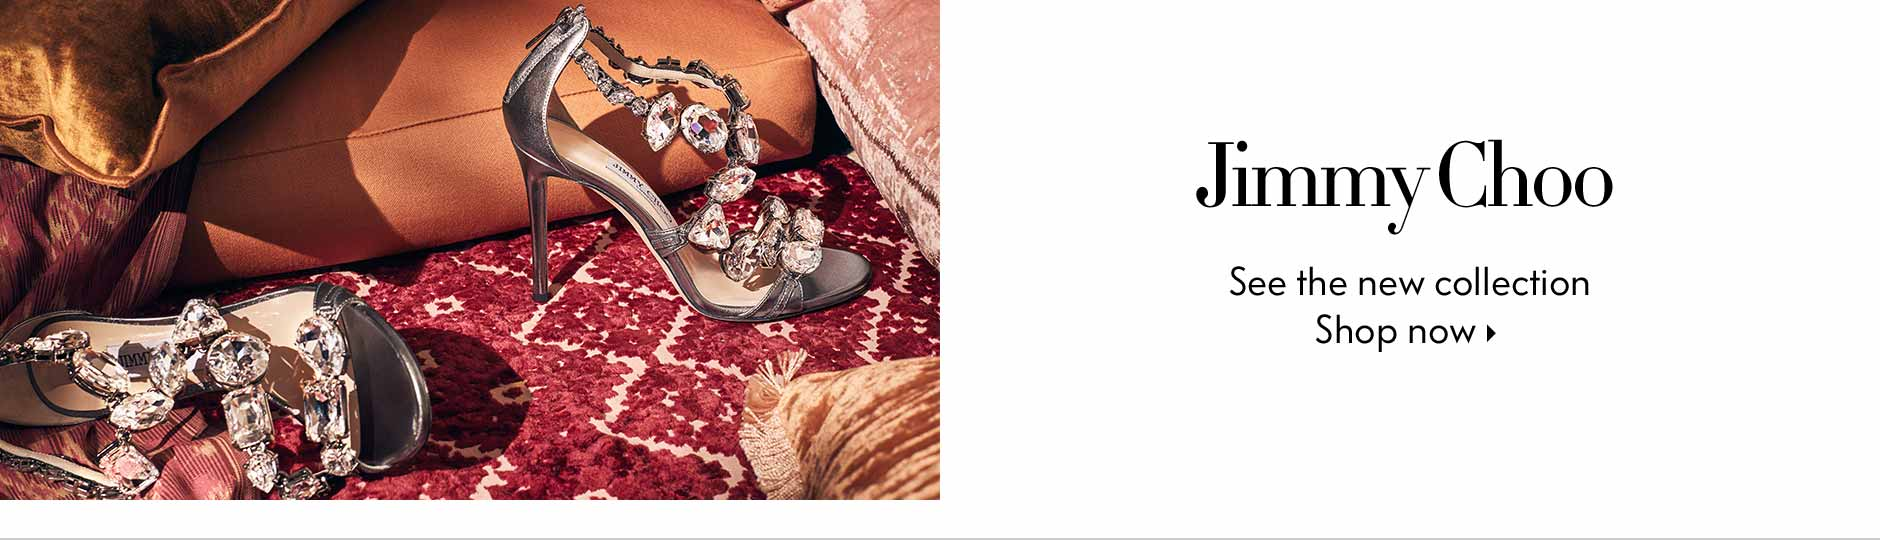 Jimmy Choo - See the new collection - Shop now